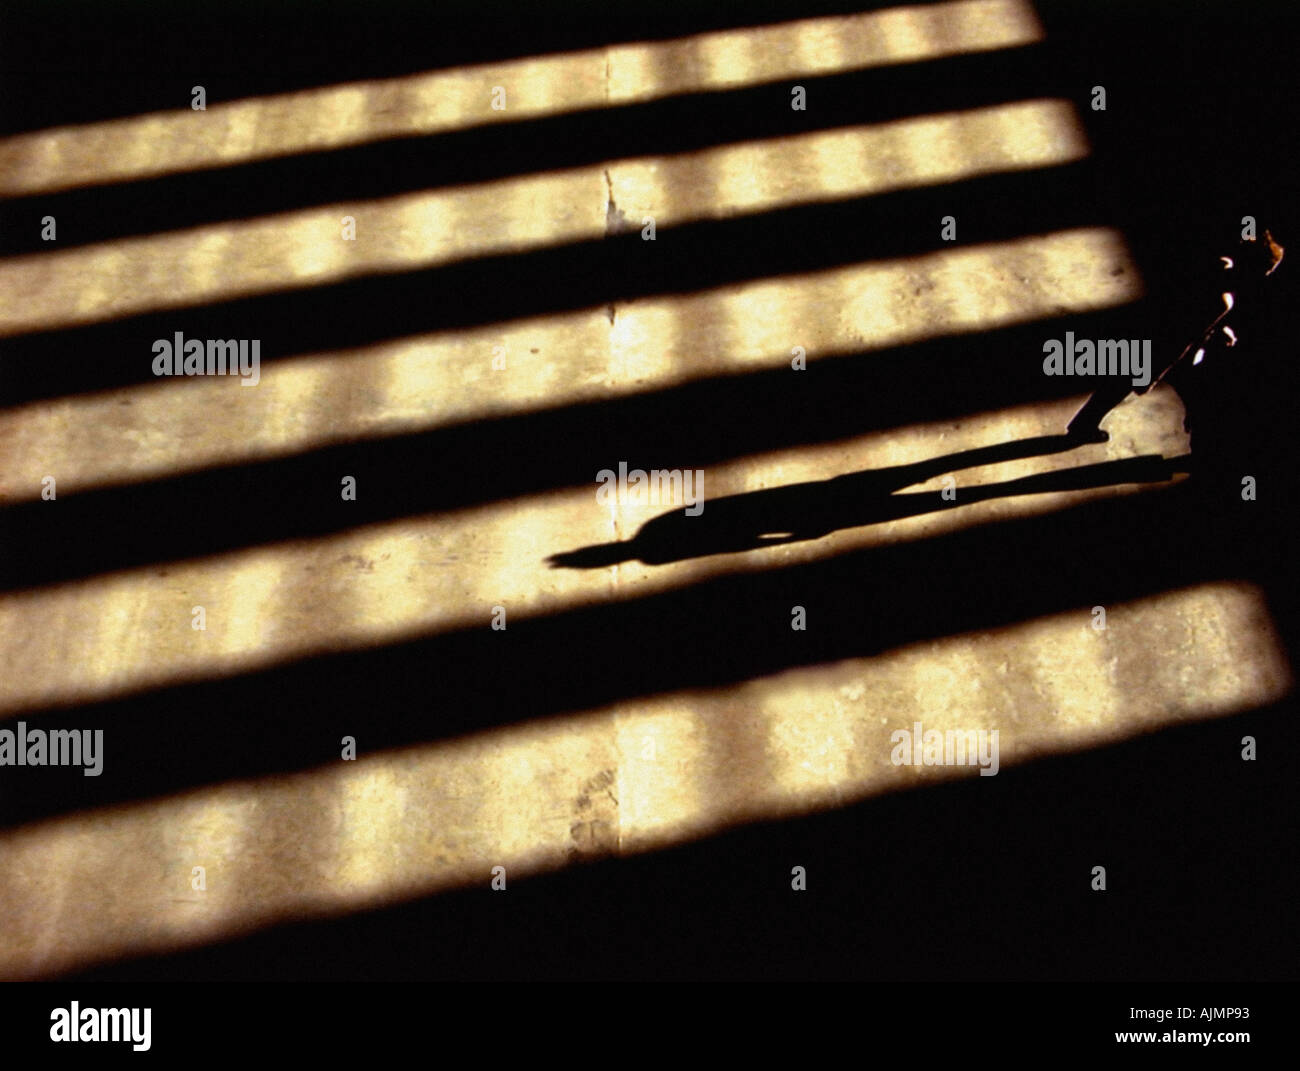 Person standing in shadows - Stock Image